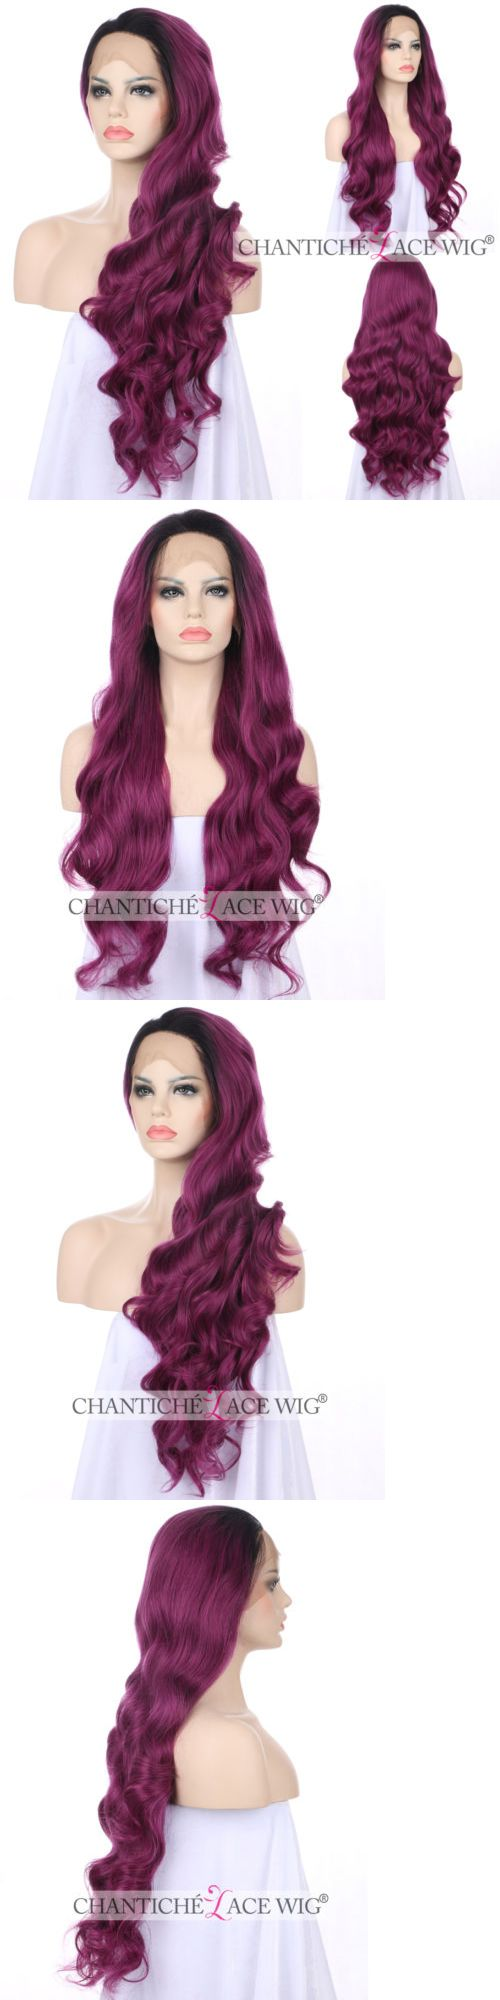 Wigs and Hairpieces: Women S Front Lace Wigs Synthetic Hair Ombre Purple Natural Wavy Heat Resistant -> BUY IT NOW ONLY: $45.99 on eBay!